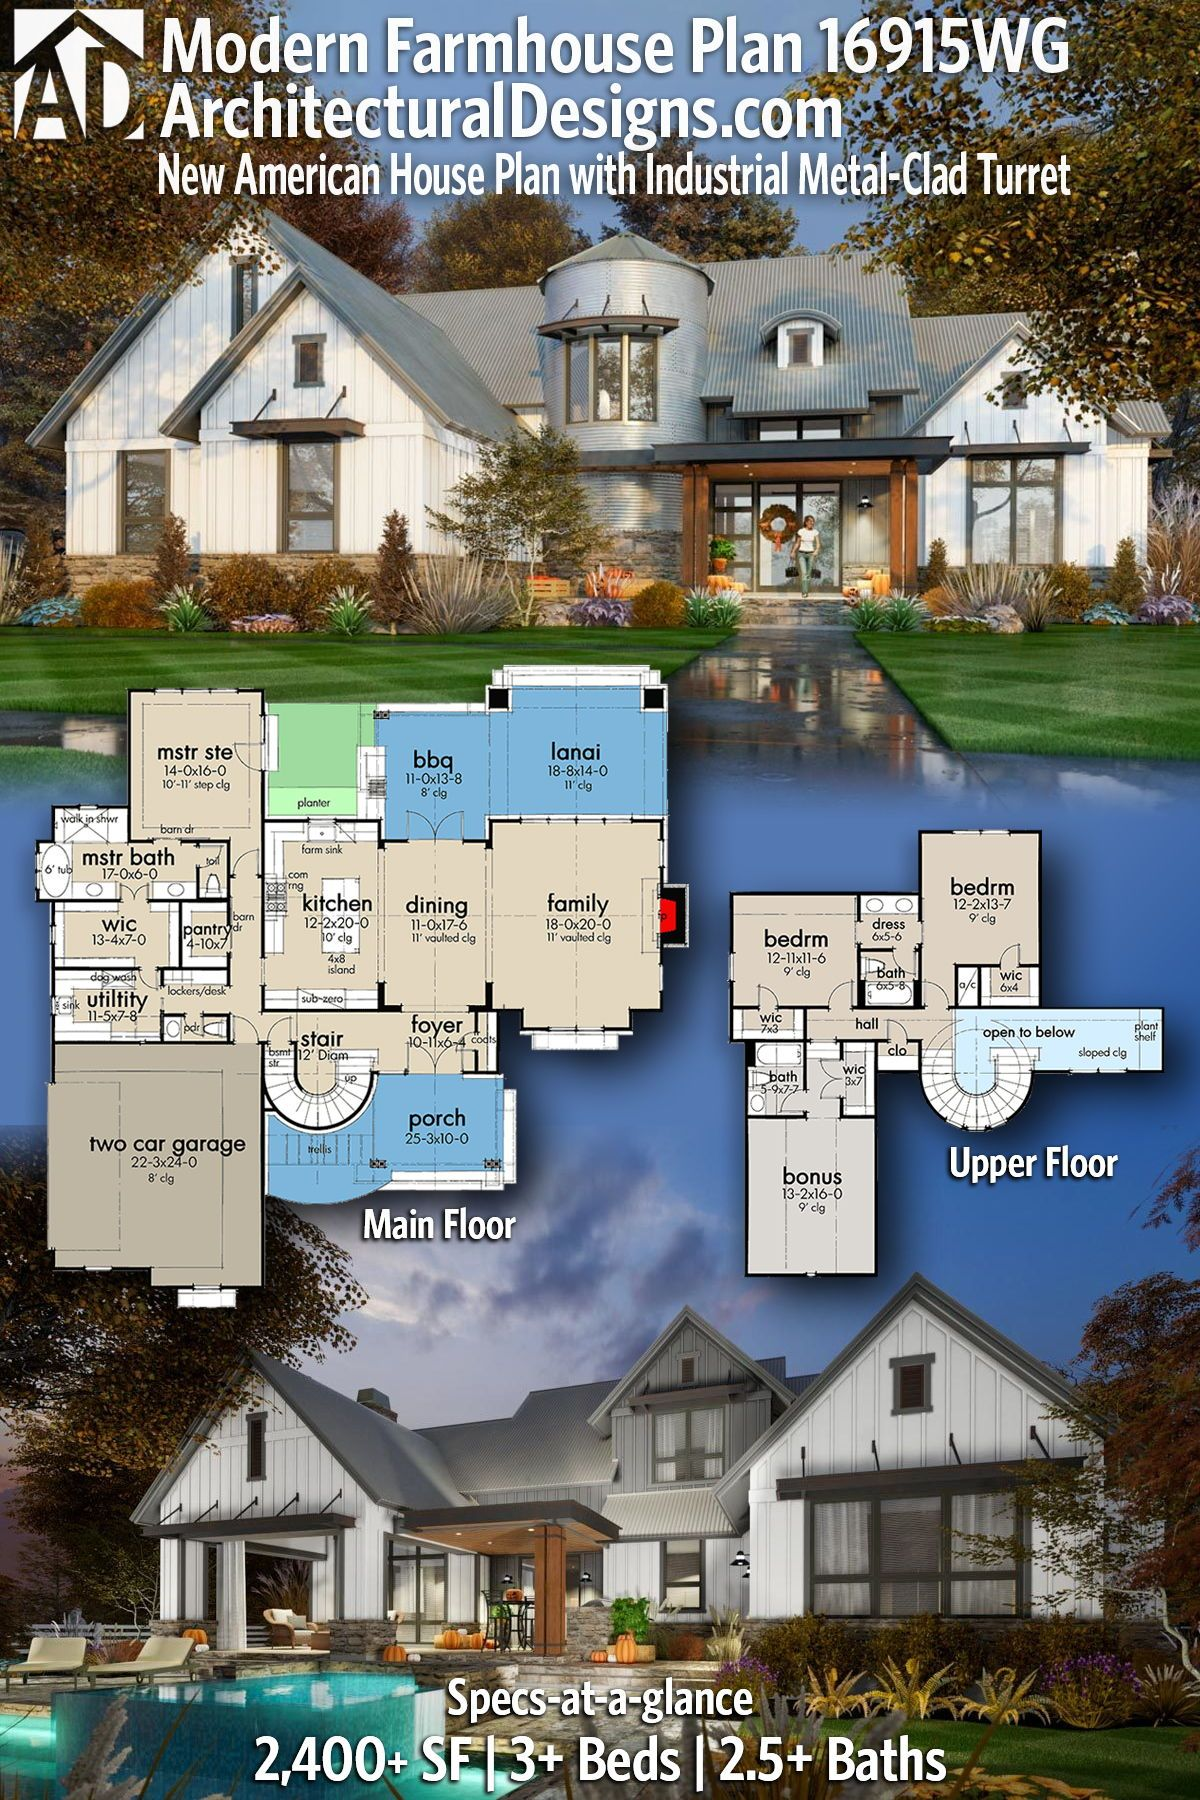 Plan 16915wg New American House Plan With Industrial Metal Clad Turret Farmhouse Floor Plans Modern Farmhouse Floors Modern Farmhouse Plans